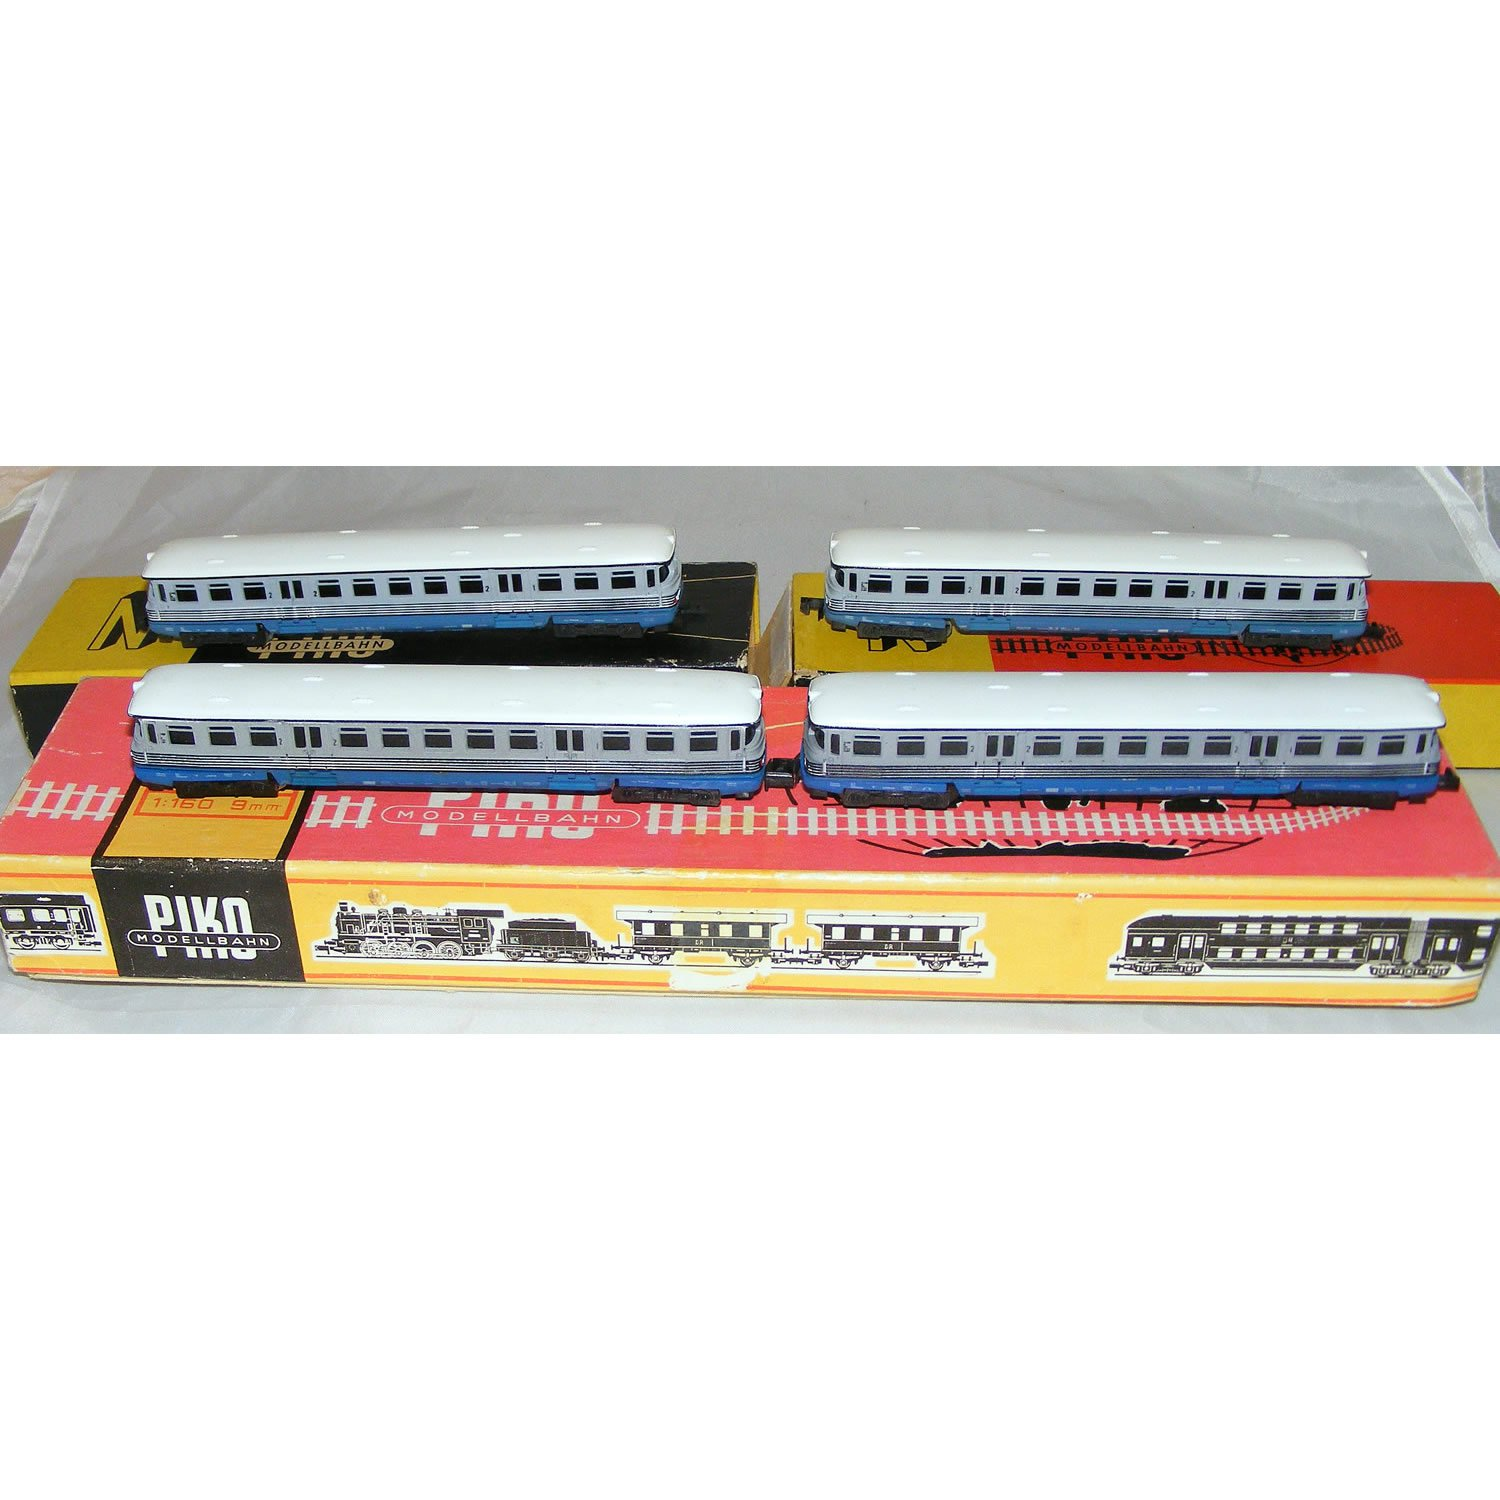 N Gauge 4 Carriage Commuter Train - 1 Powered and 3 Dummy Cars Boxed, by Piko